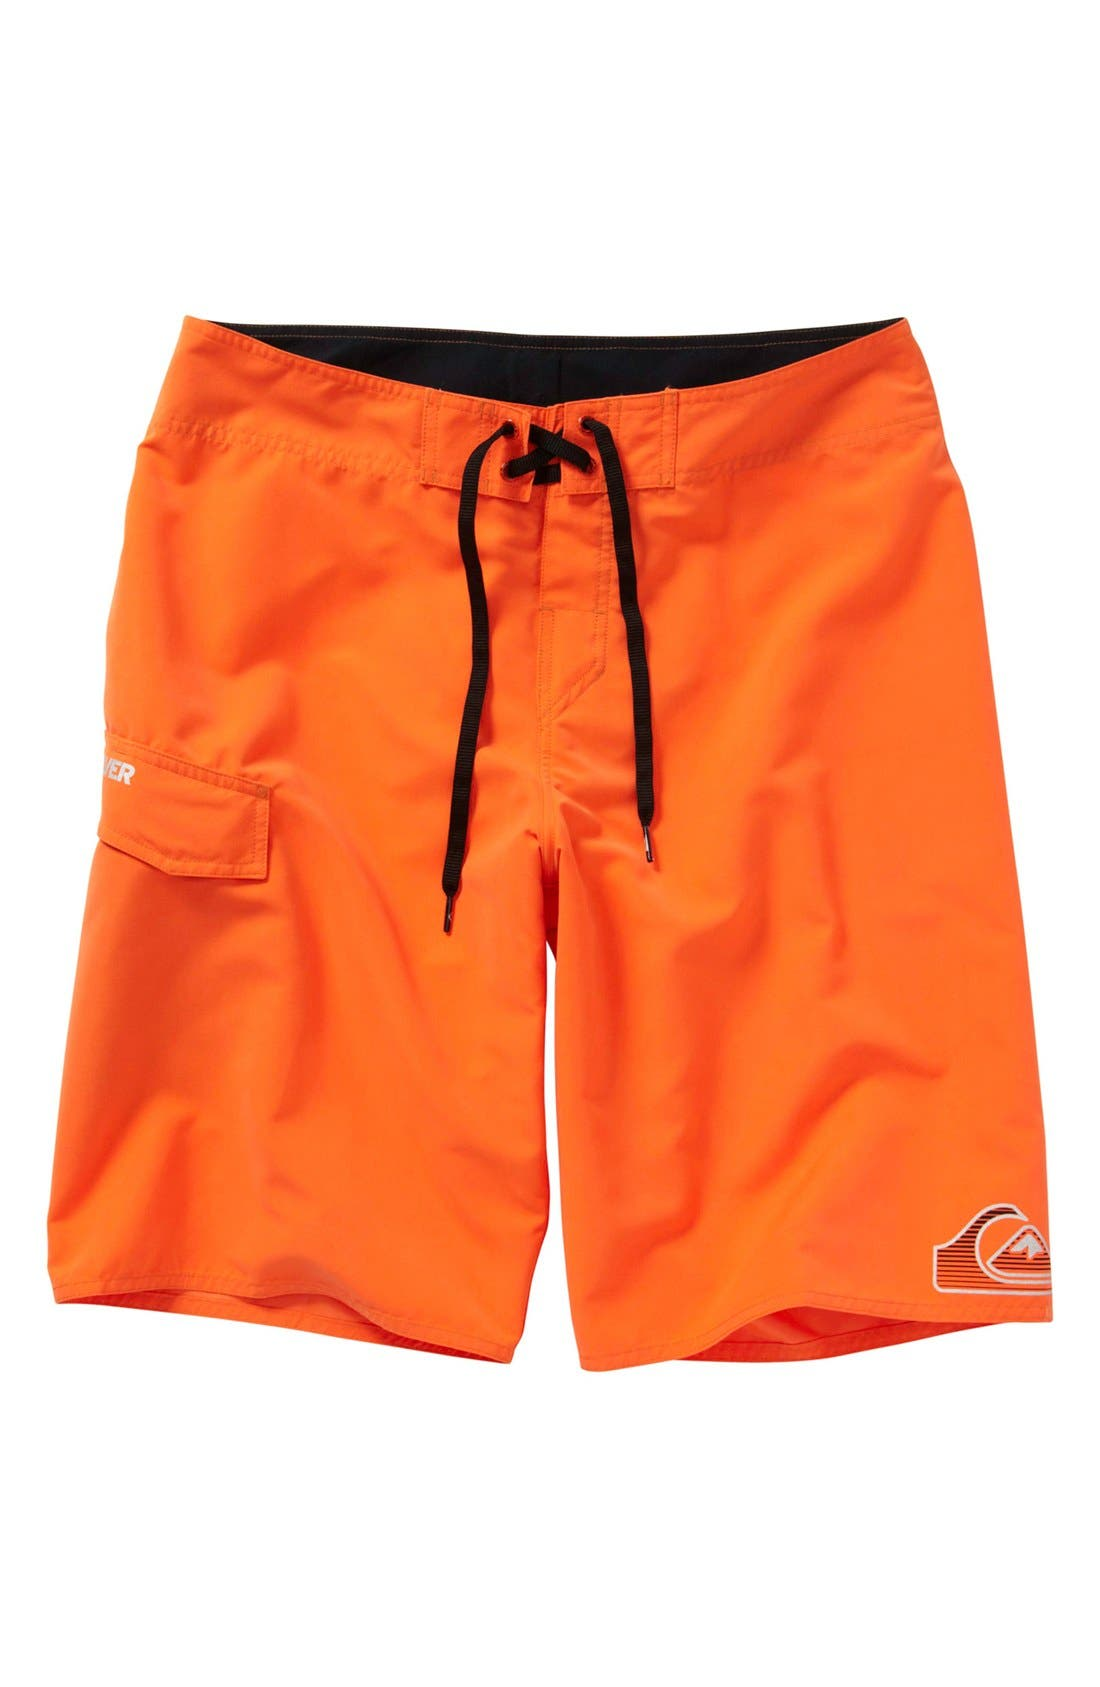 Main Image - Quiksilver 'Stomping' Board Shorts (Big Boys)